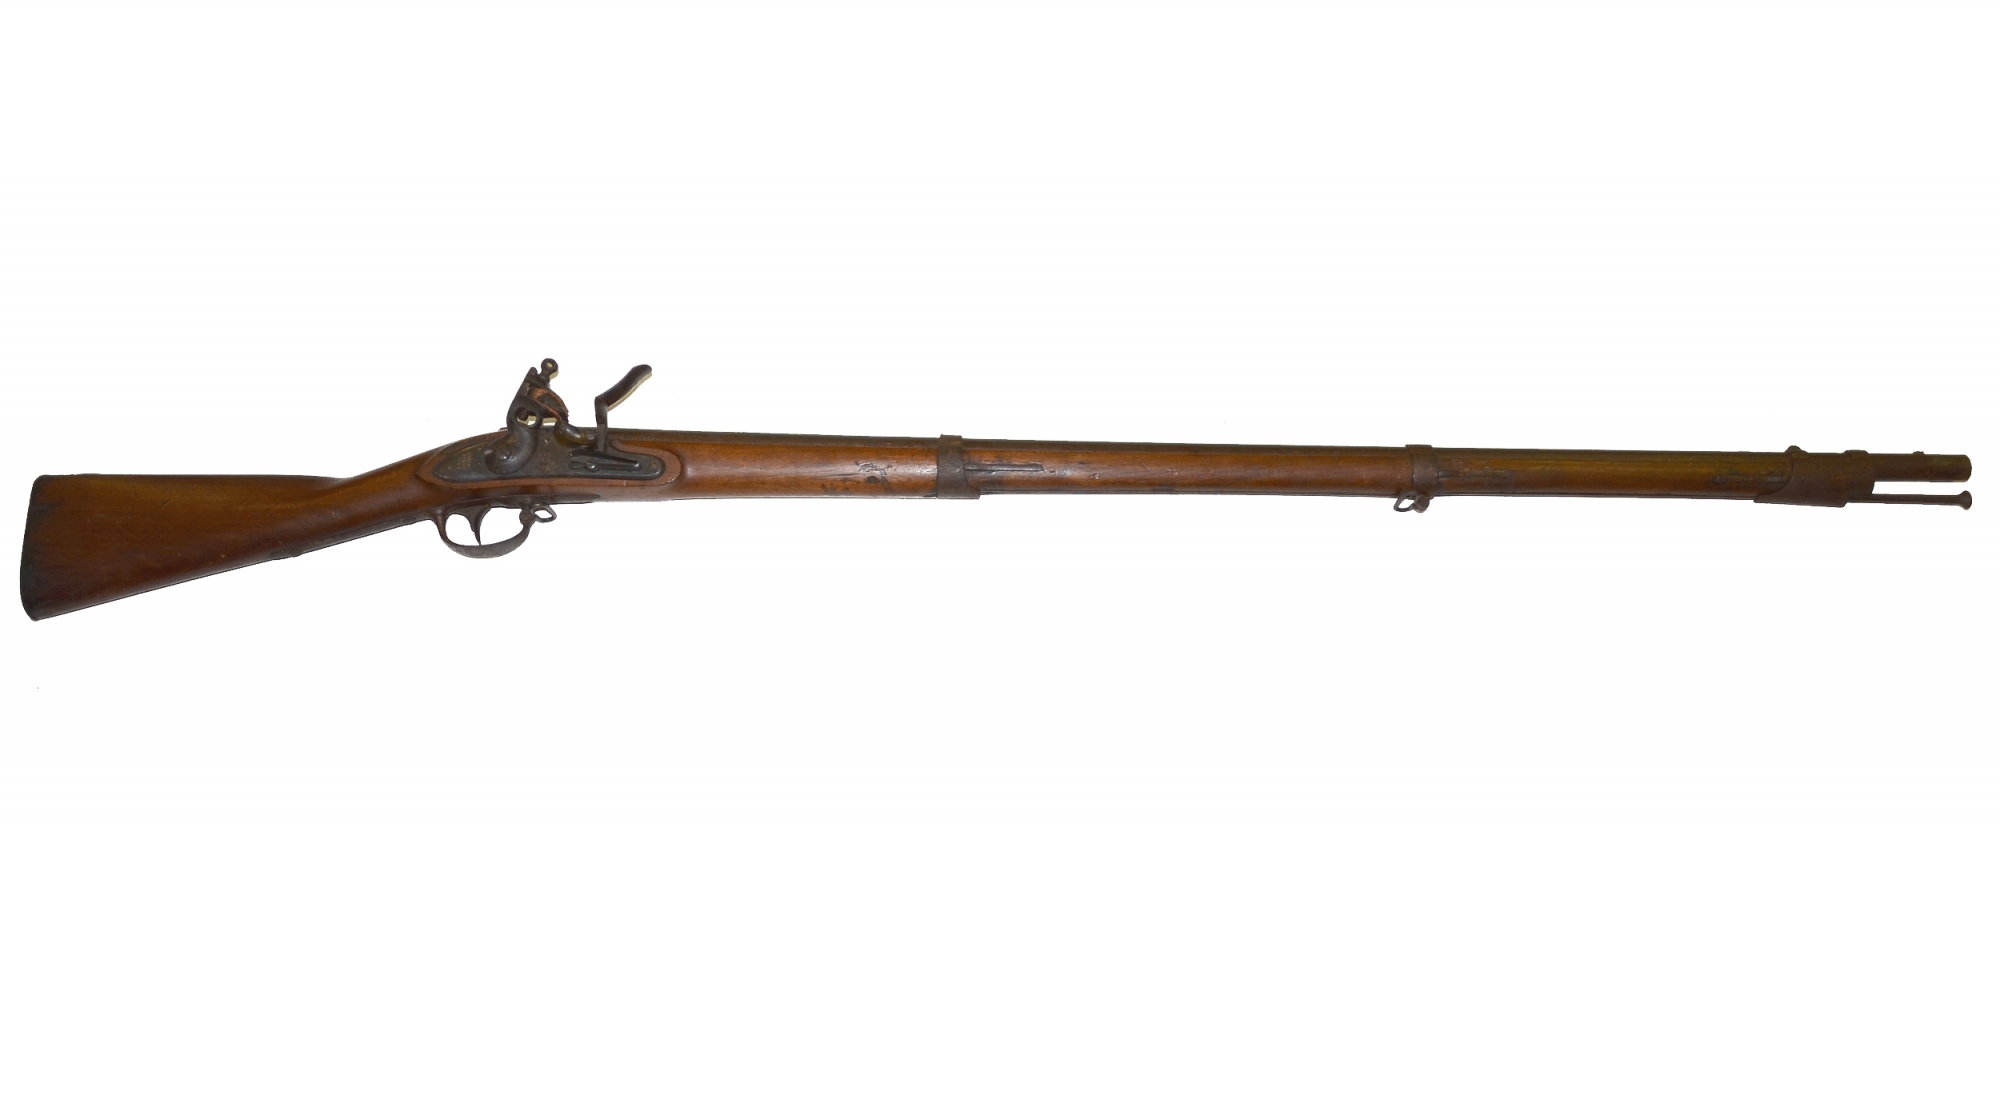 M1816 SPRINGFIELD FLINTLOCK MUSKET DATED 1832, WITH M1816 BAYONET